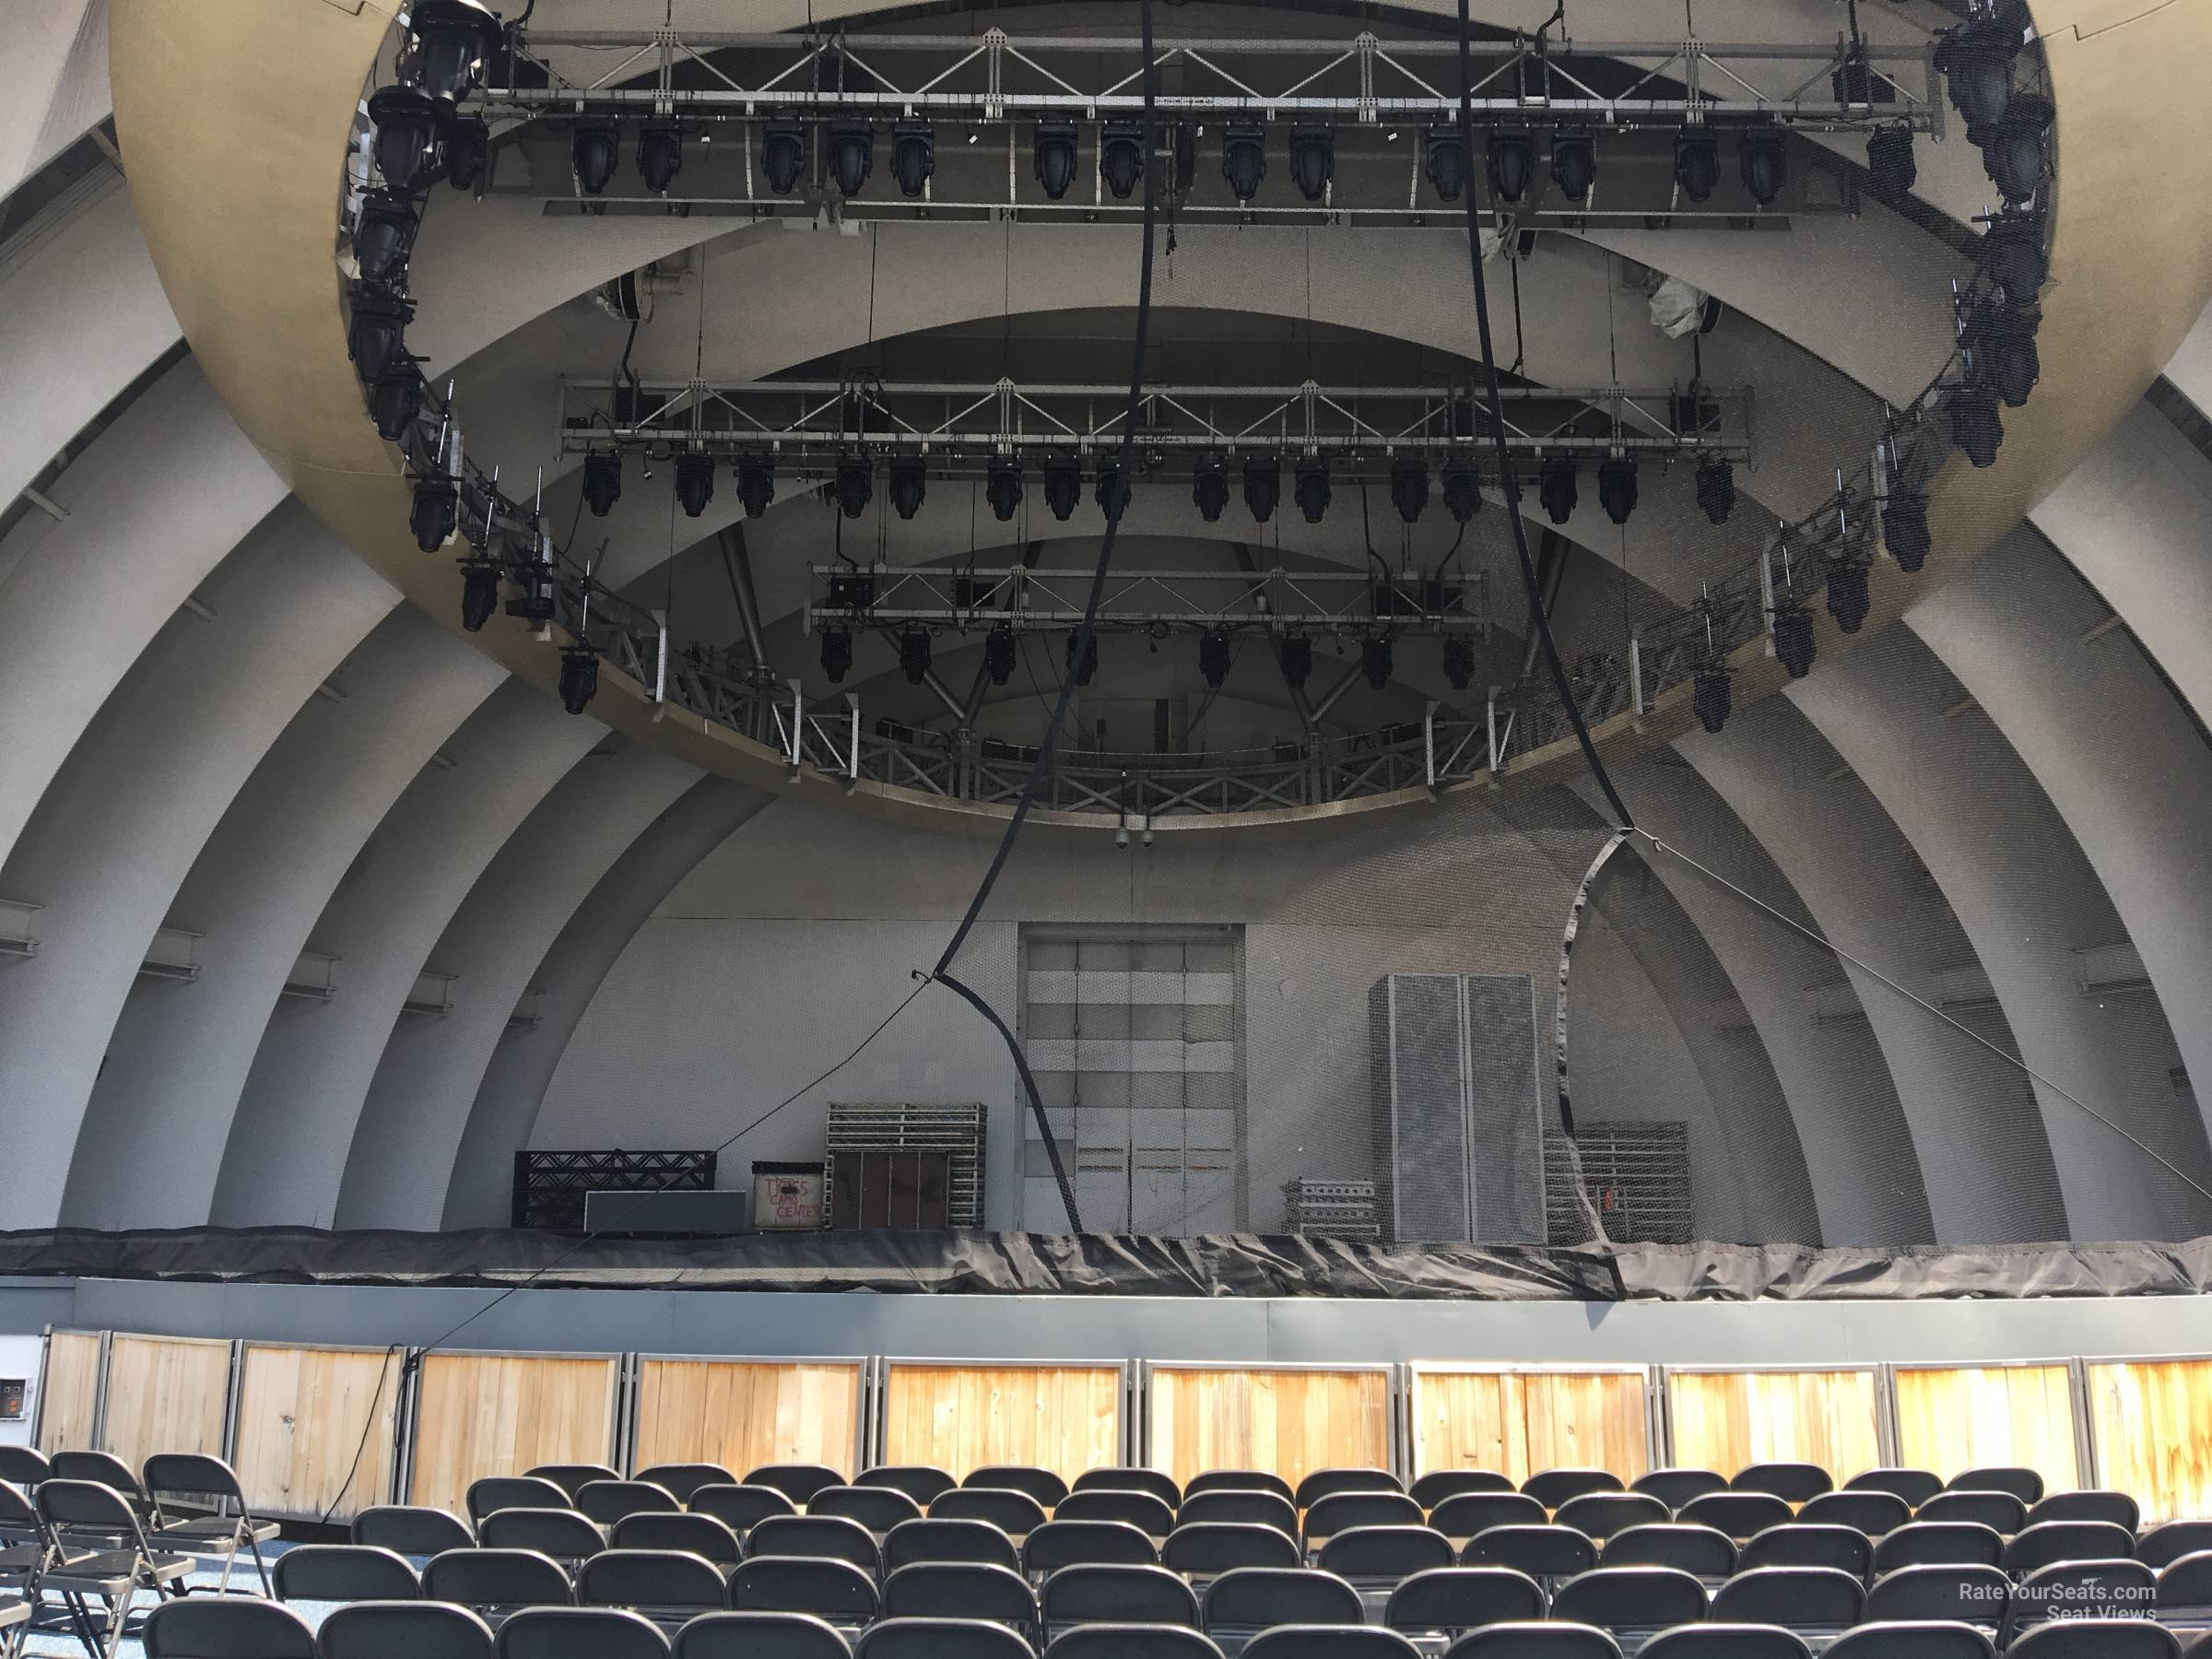 Pool C At Hollywood Bowl Rateyourseats Com